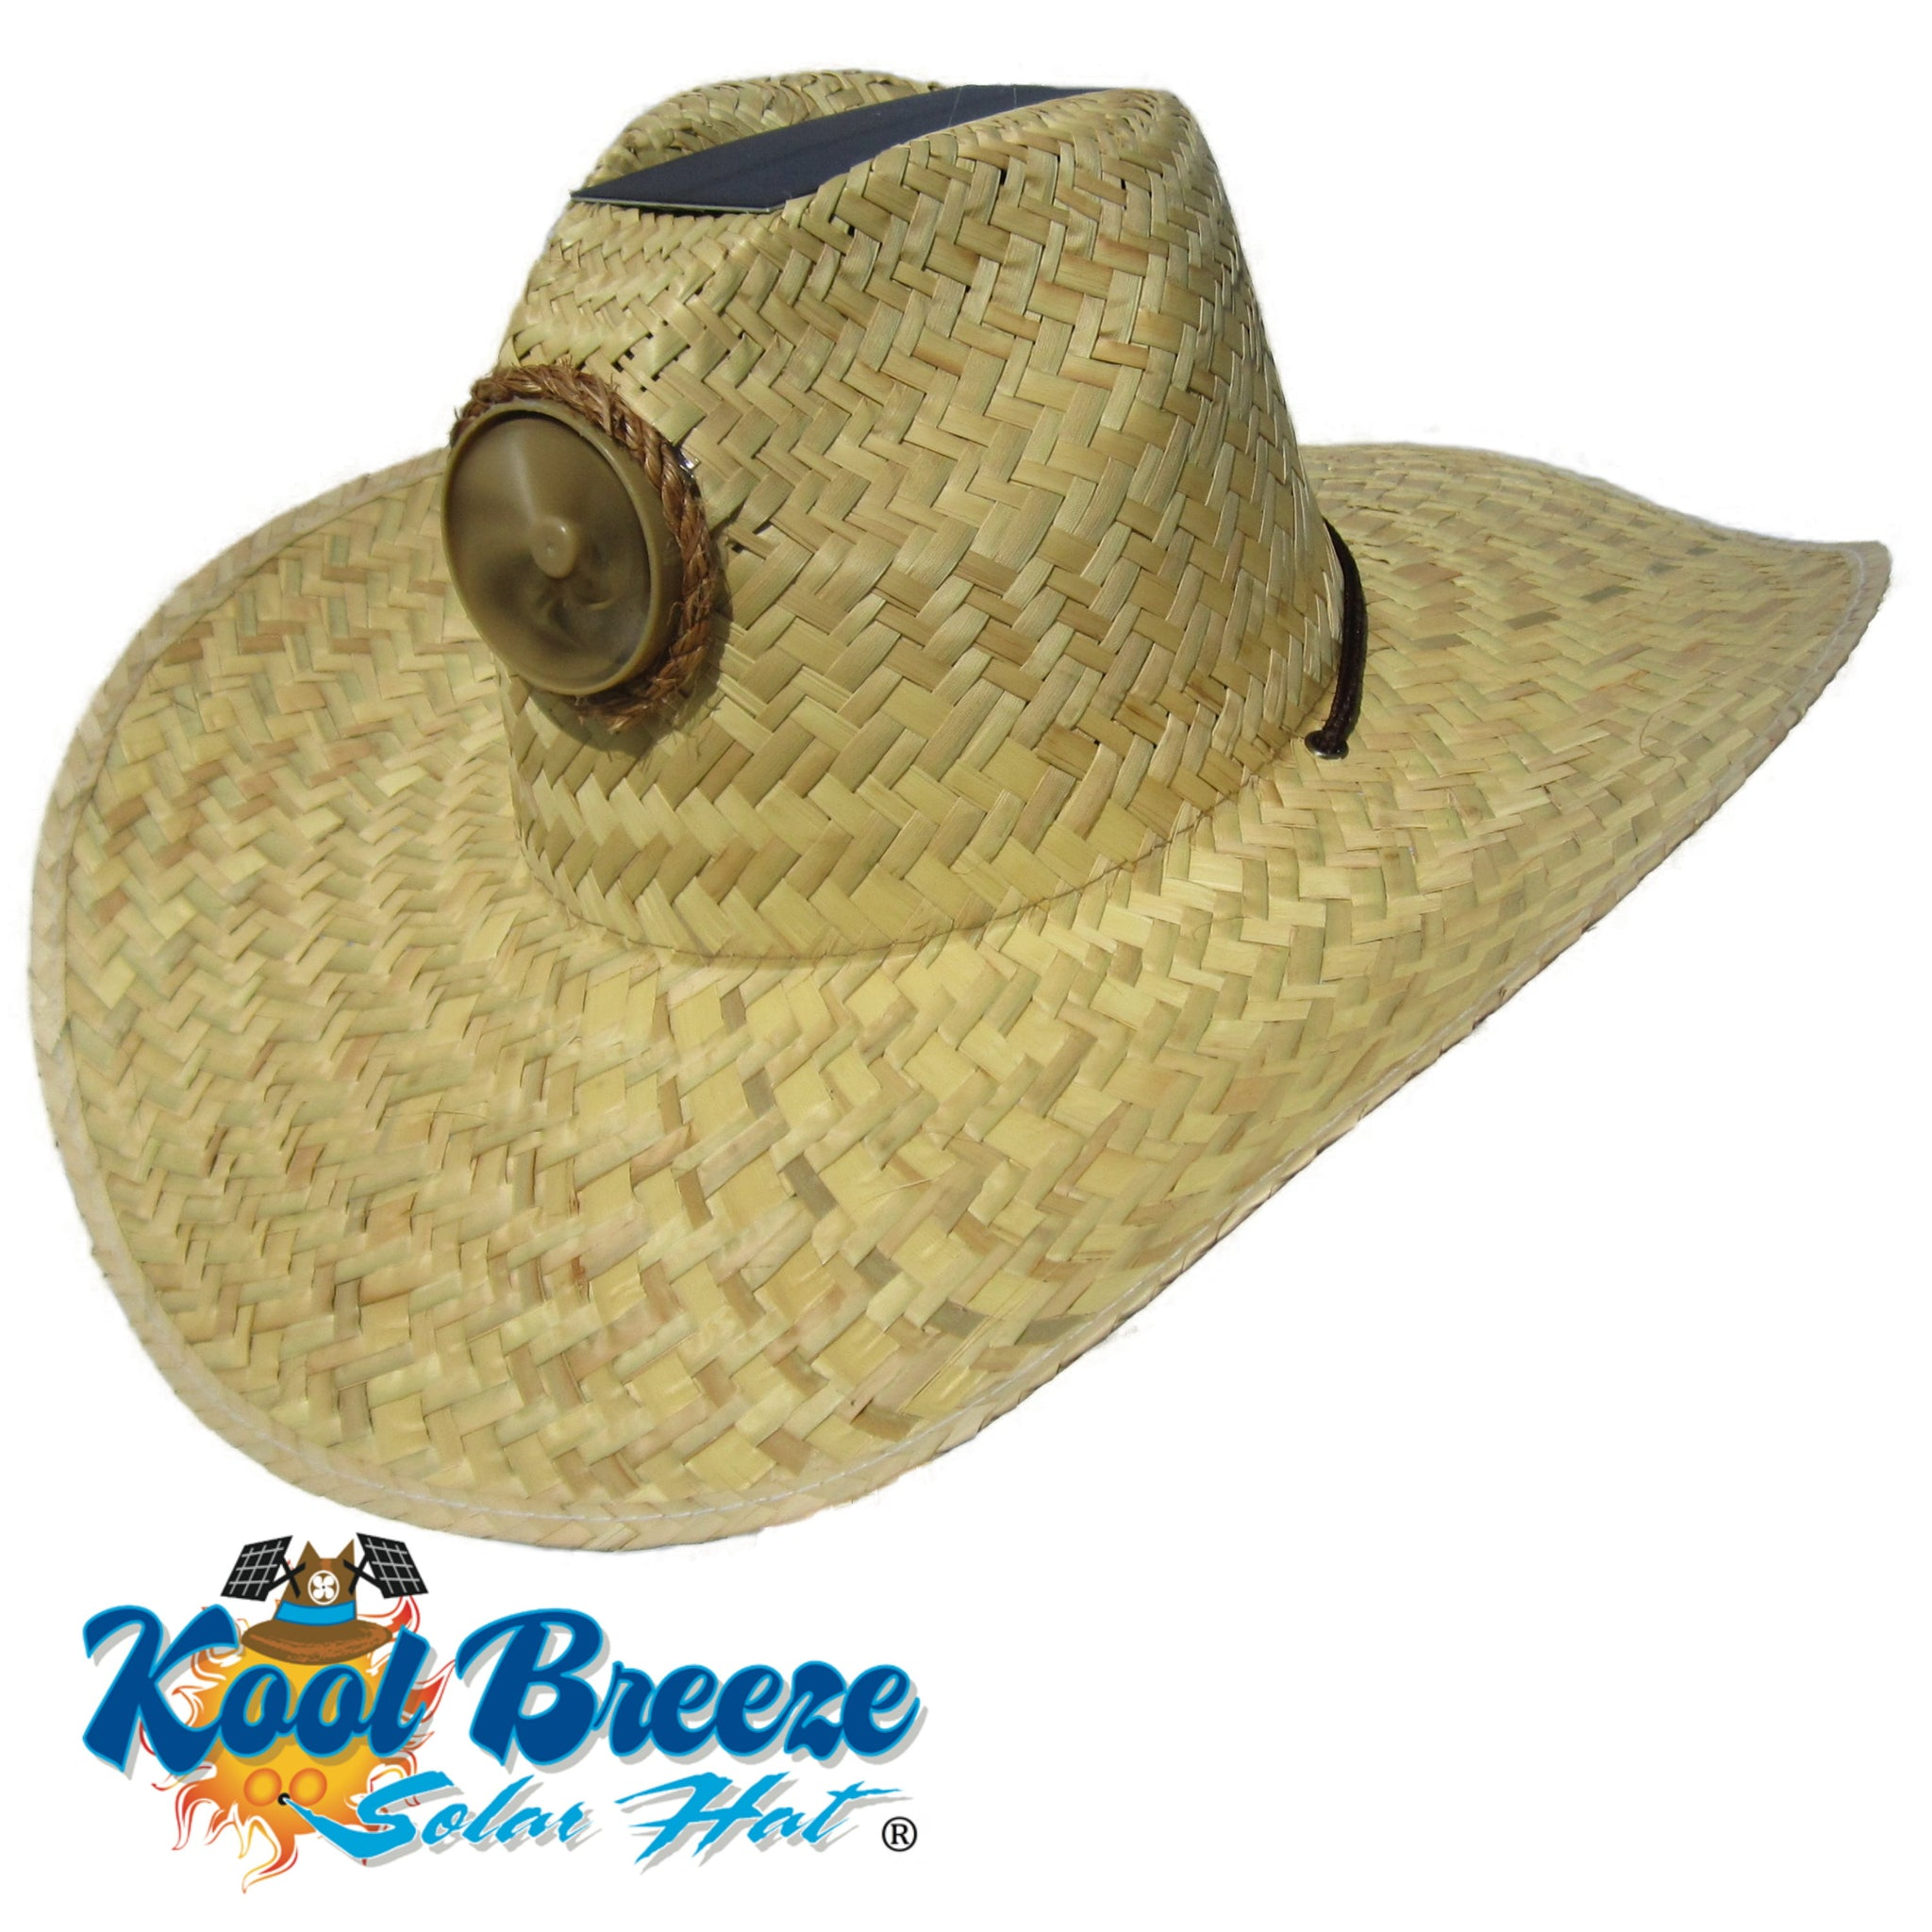 Mens / Ladies Kool Breeze Solar Gentlemens Natural Hat